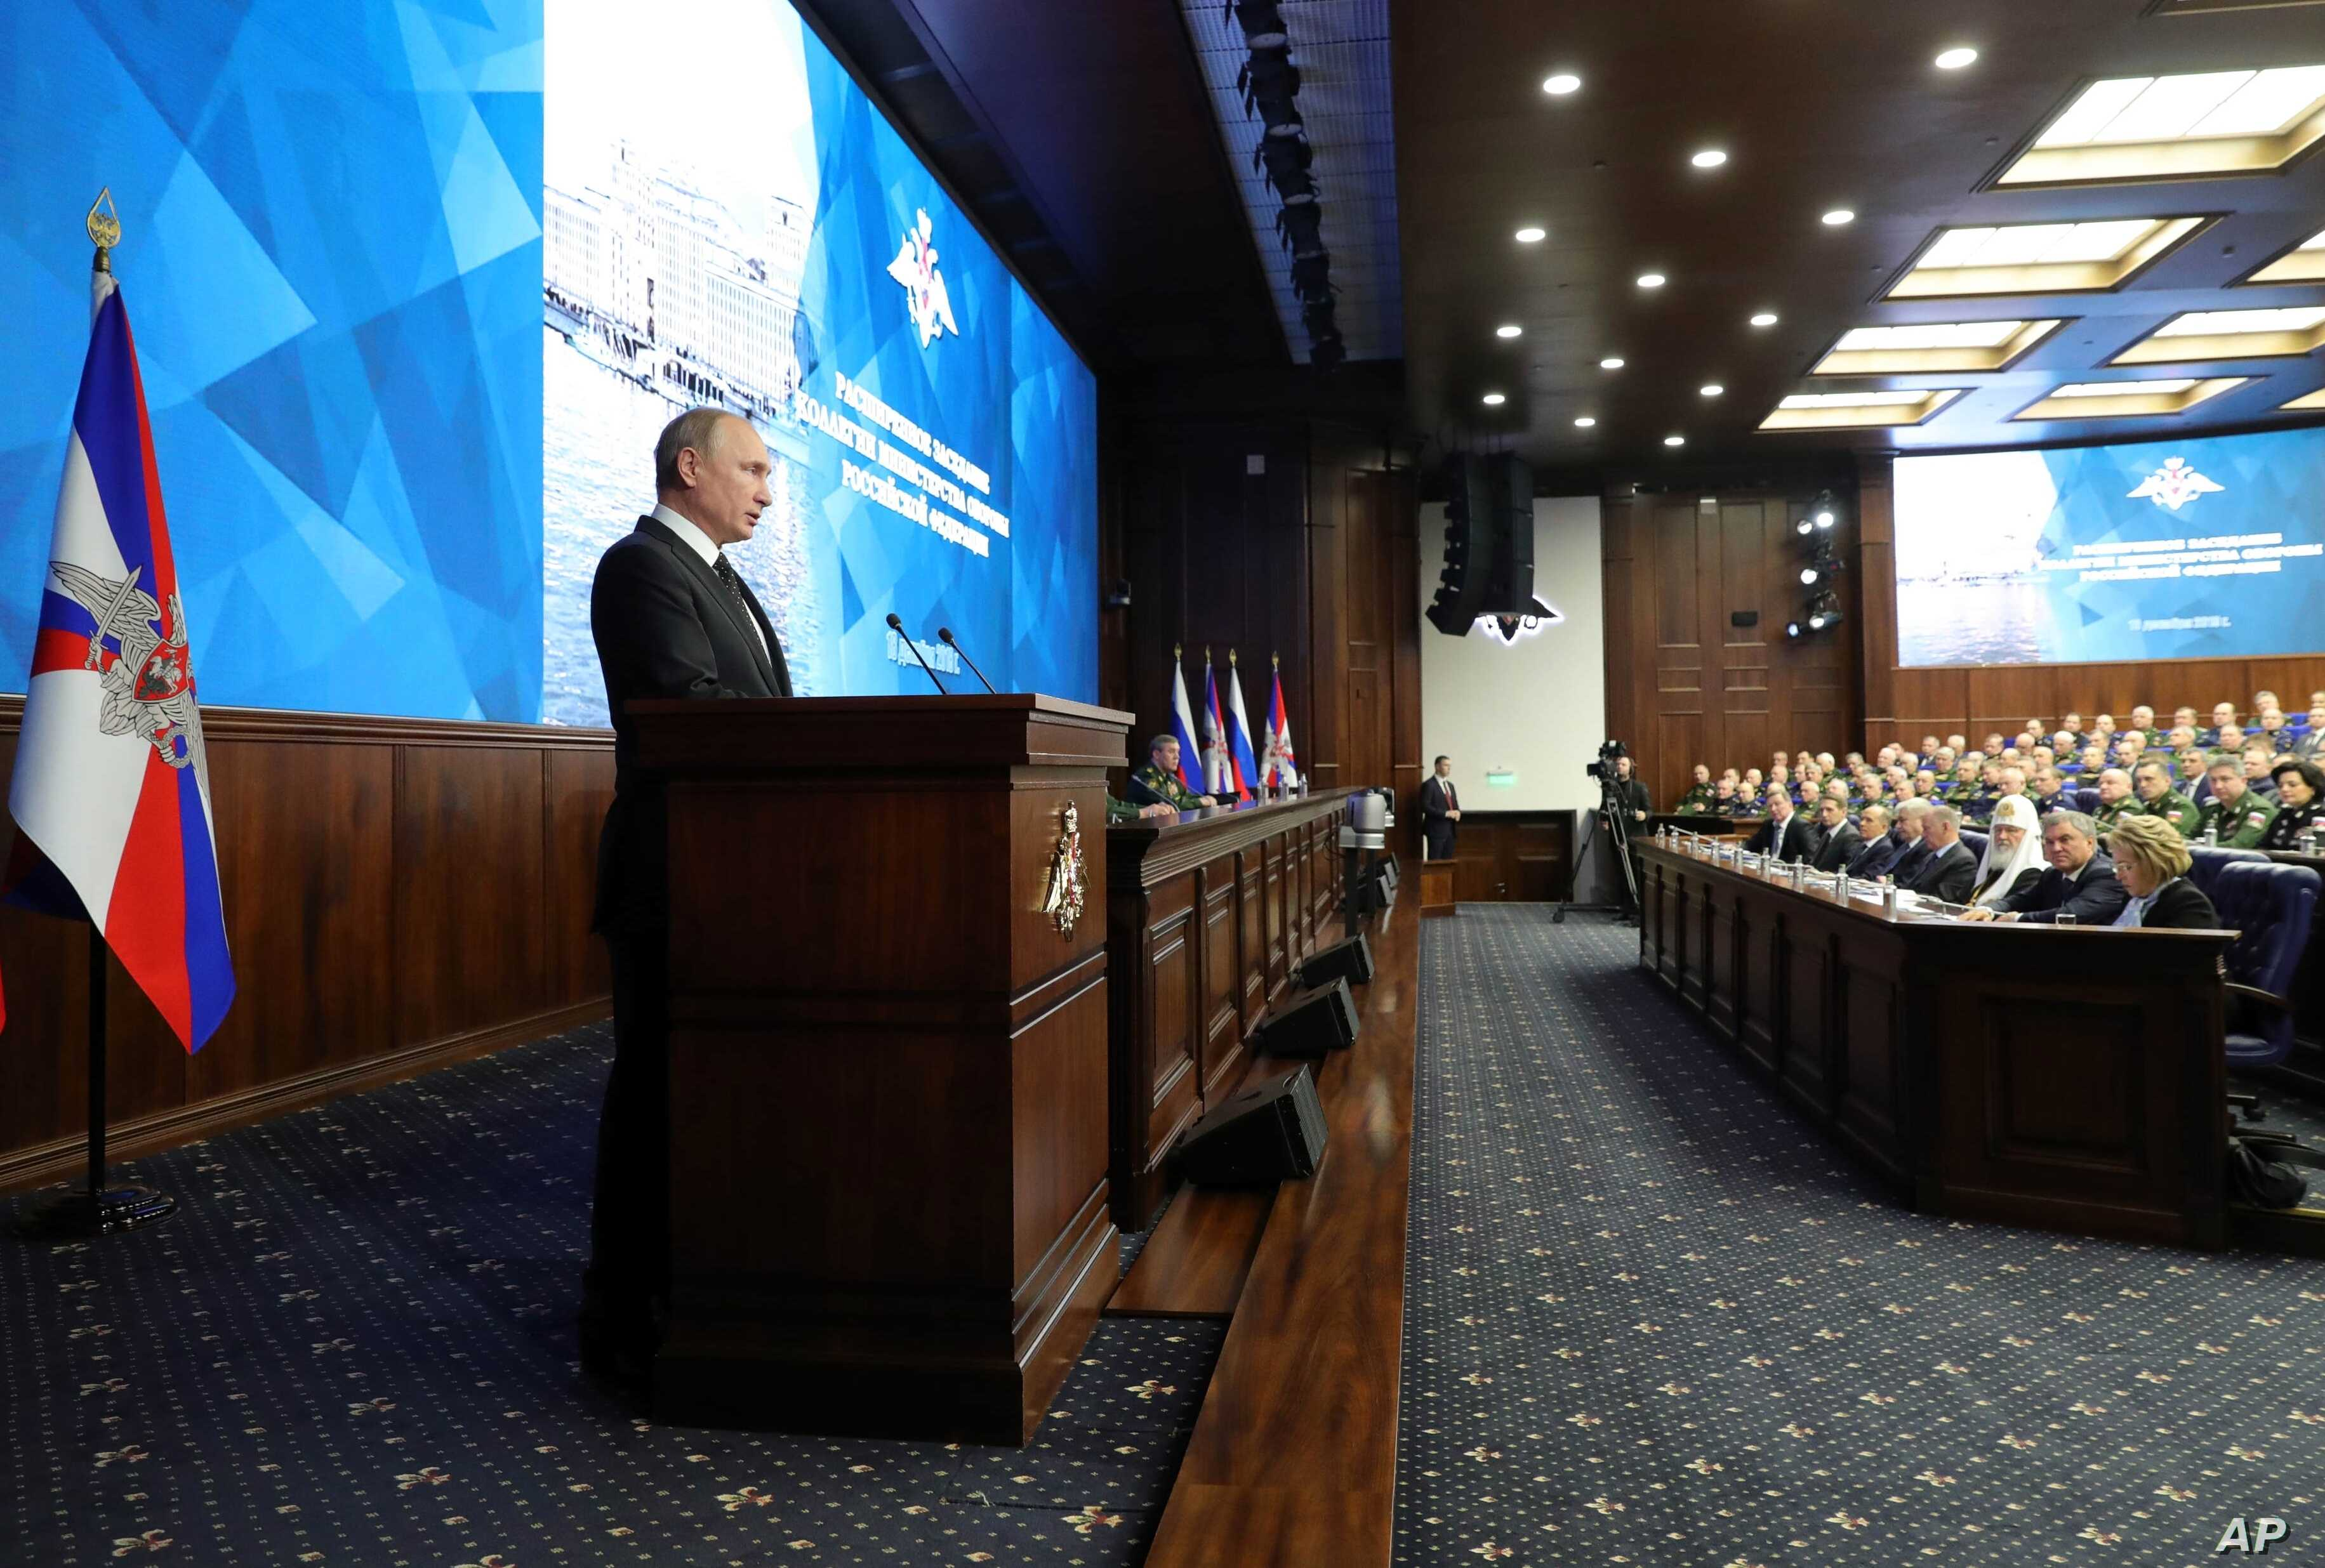 Russian President Vladimir Putin makes an address during a meeting in the Russian Defense Ministry's headquarters in Moscow, Russia, Dec. 18, 2018.